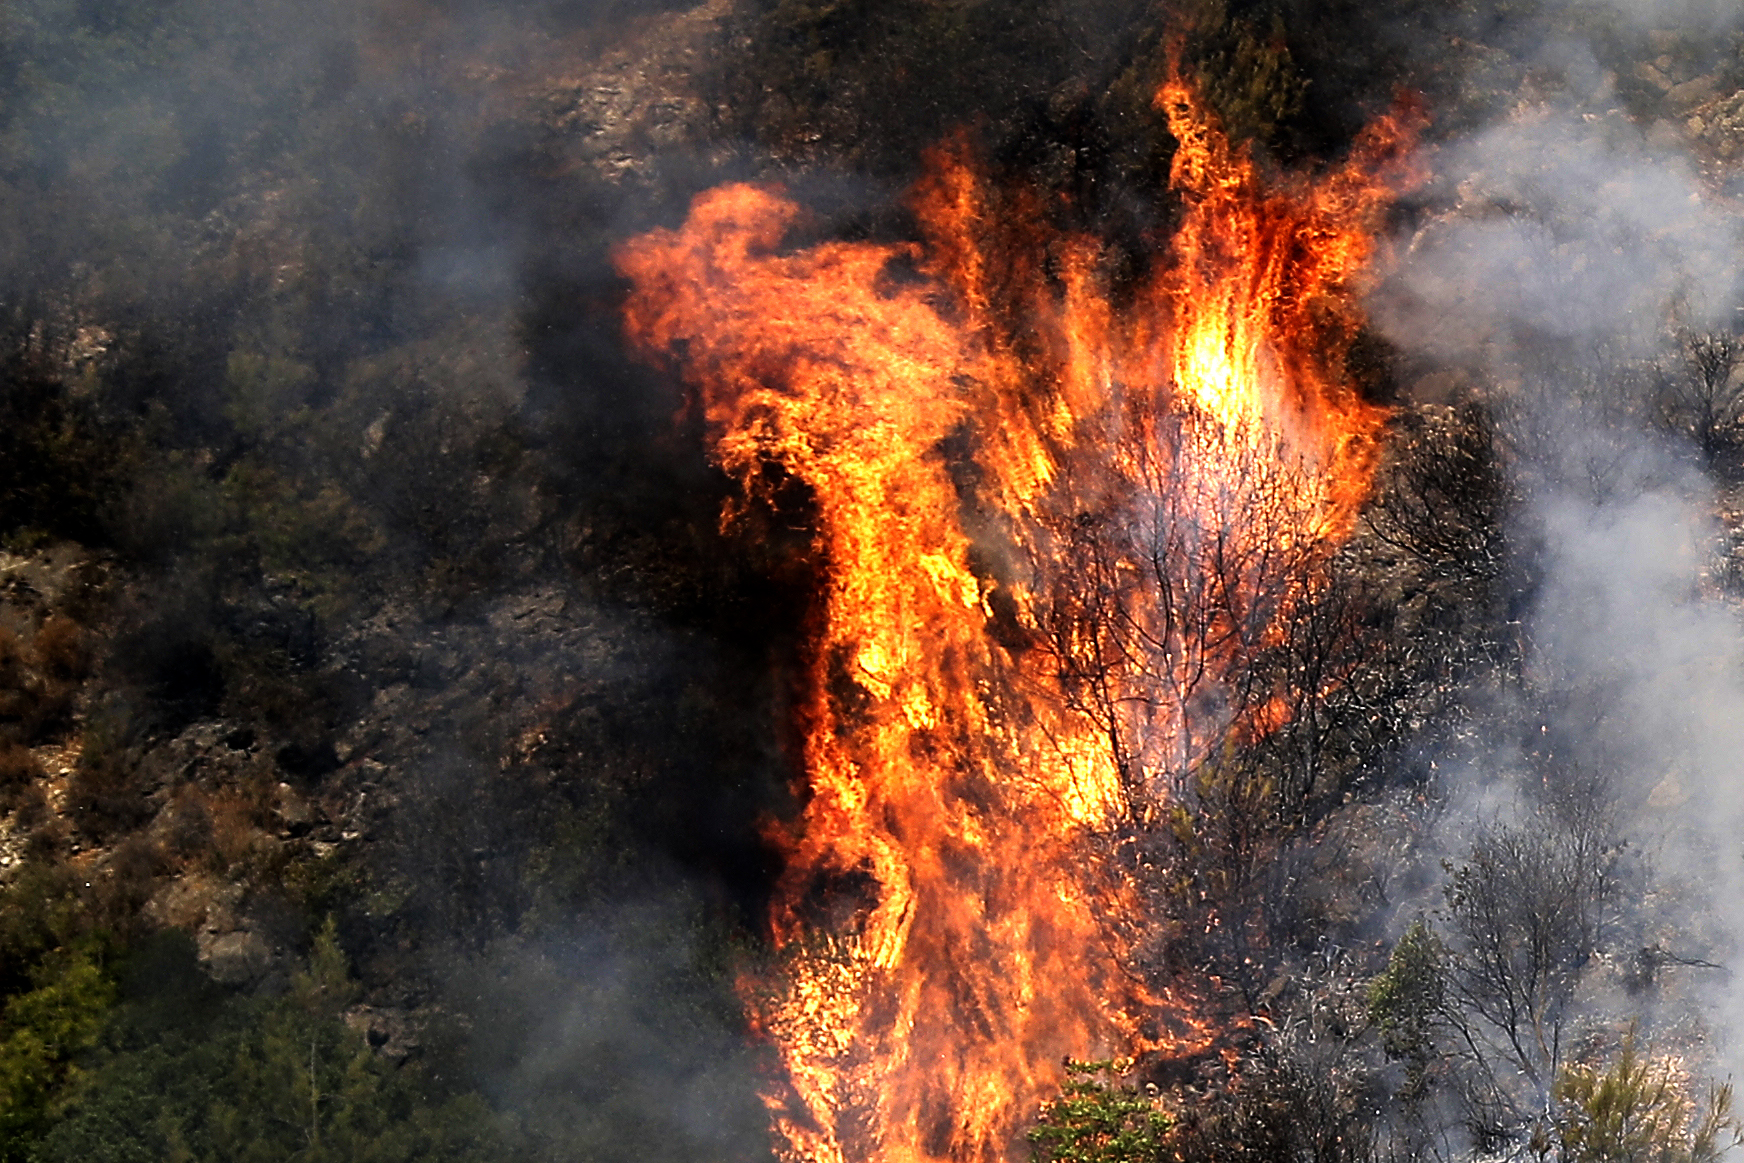 Wildfires are raging in Lebanon. Experts say they saw this coming.